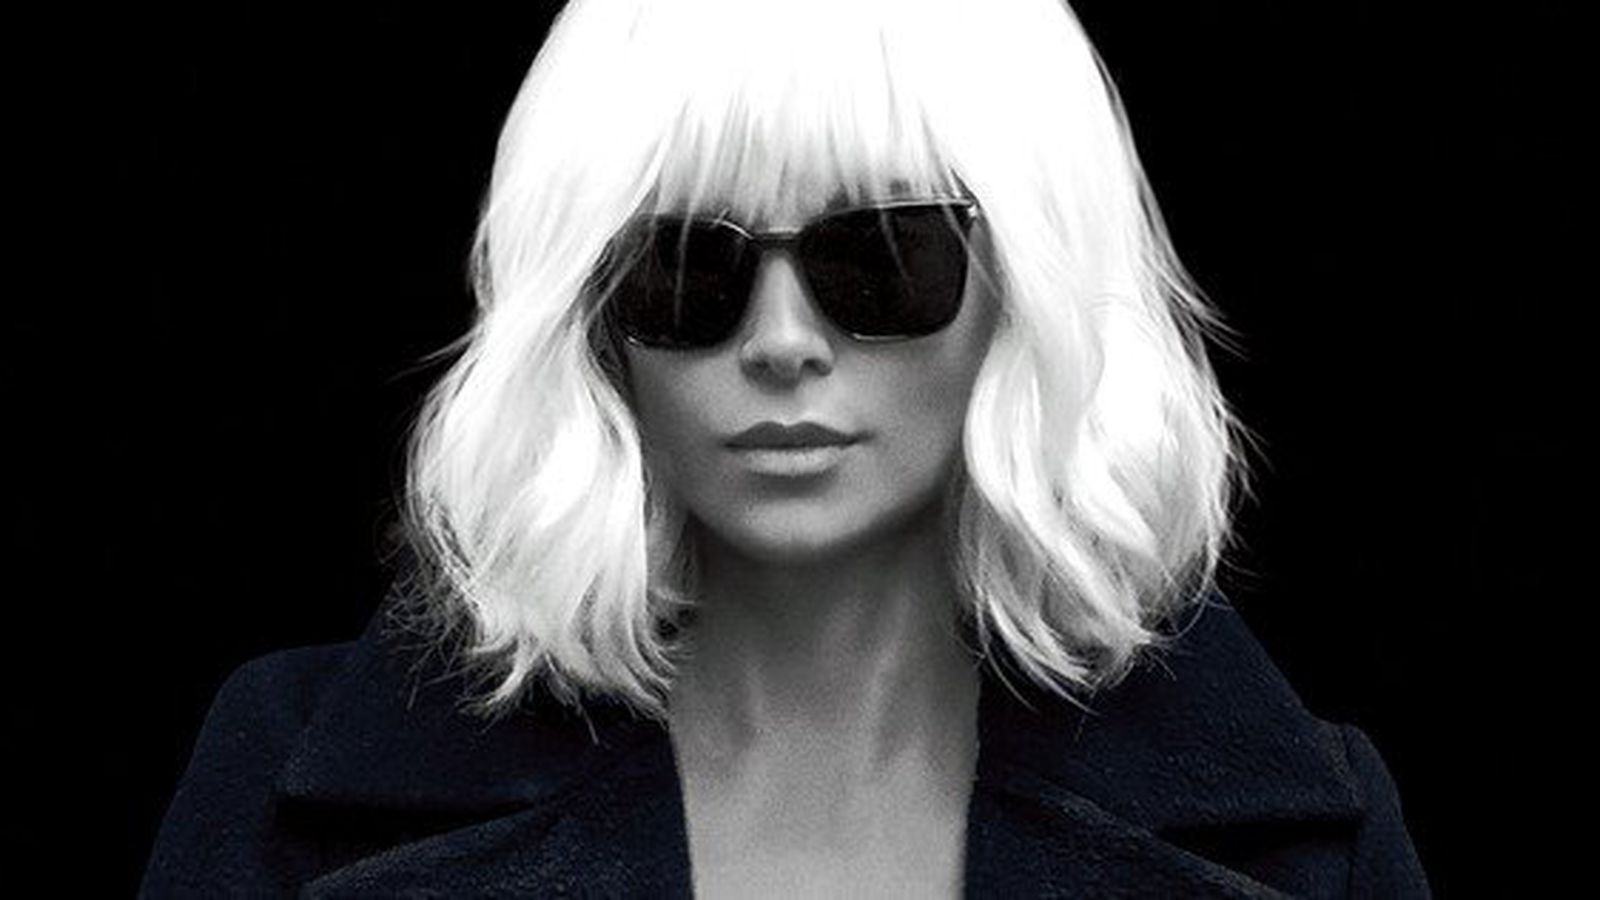 atomic blondes trailer shows charlize theron going full